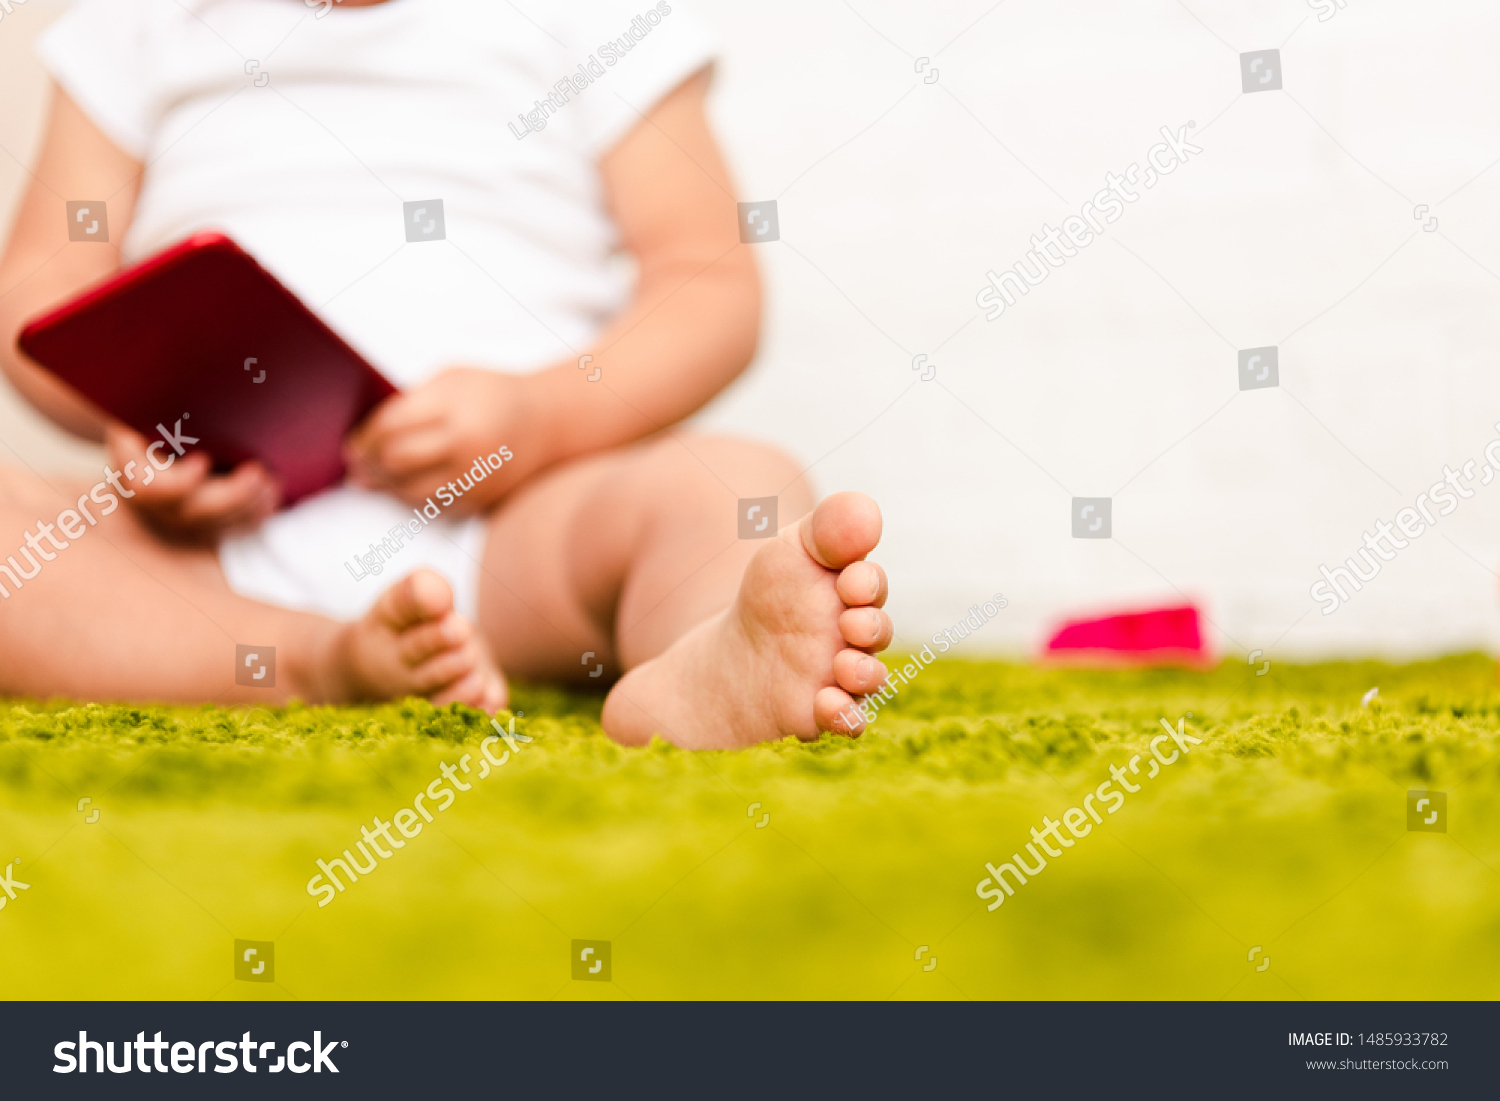 Partial view of little barefoot child sitting on green floor and holding digital device  #1485933782